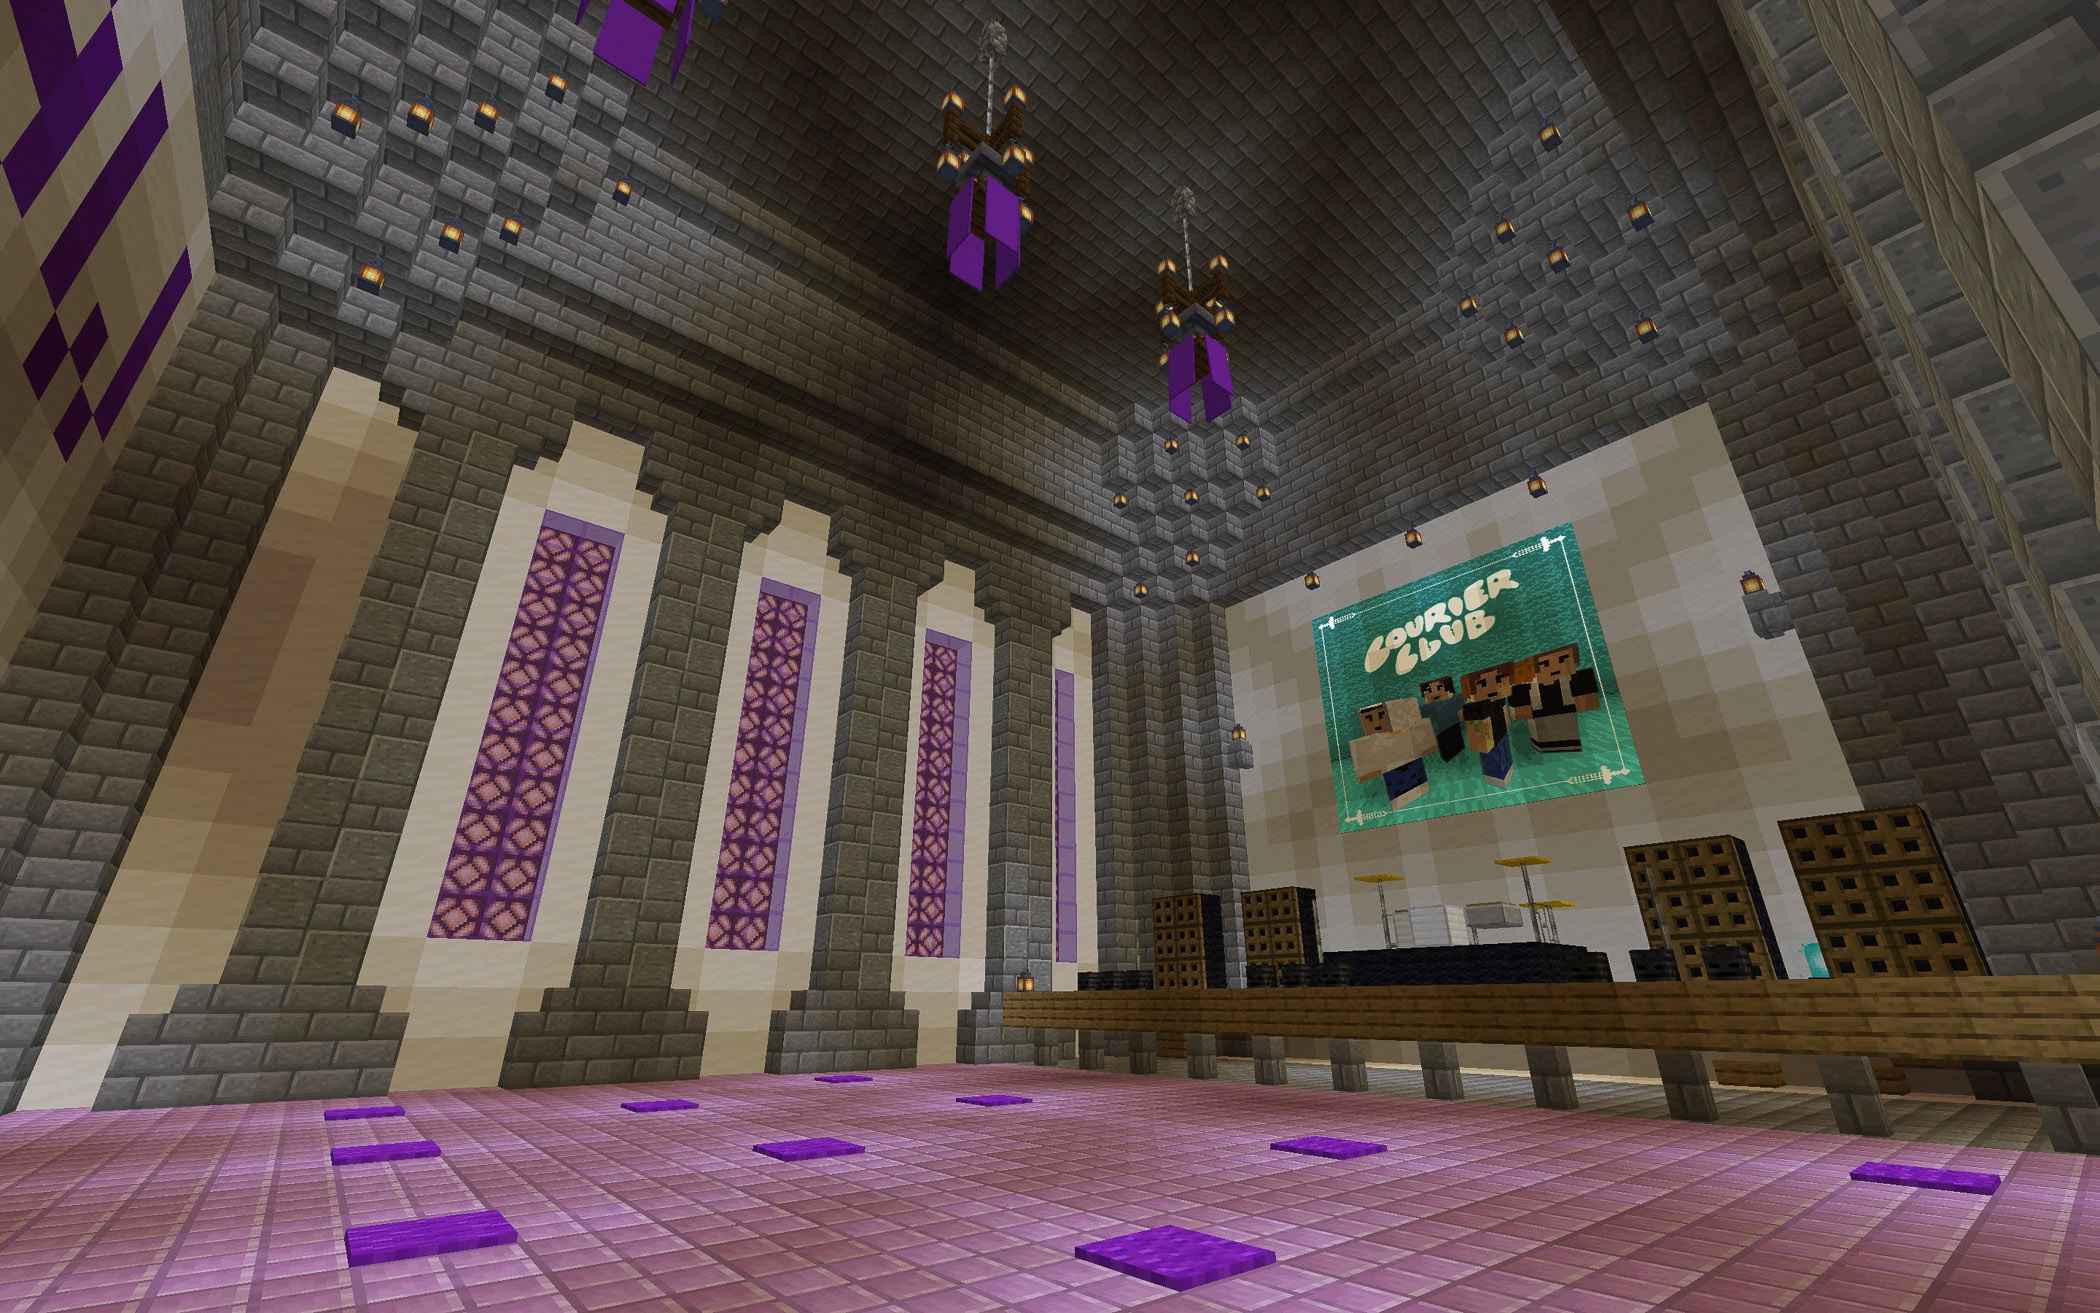 Stage Is Set In Minecraft For International Music Festival Whyy